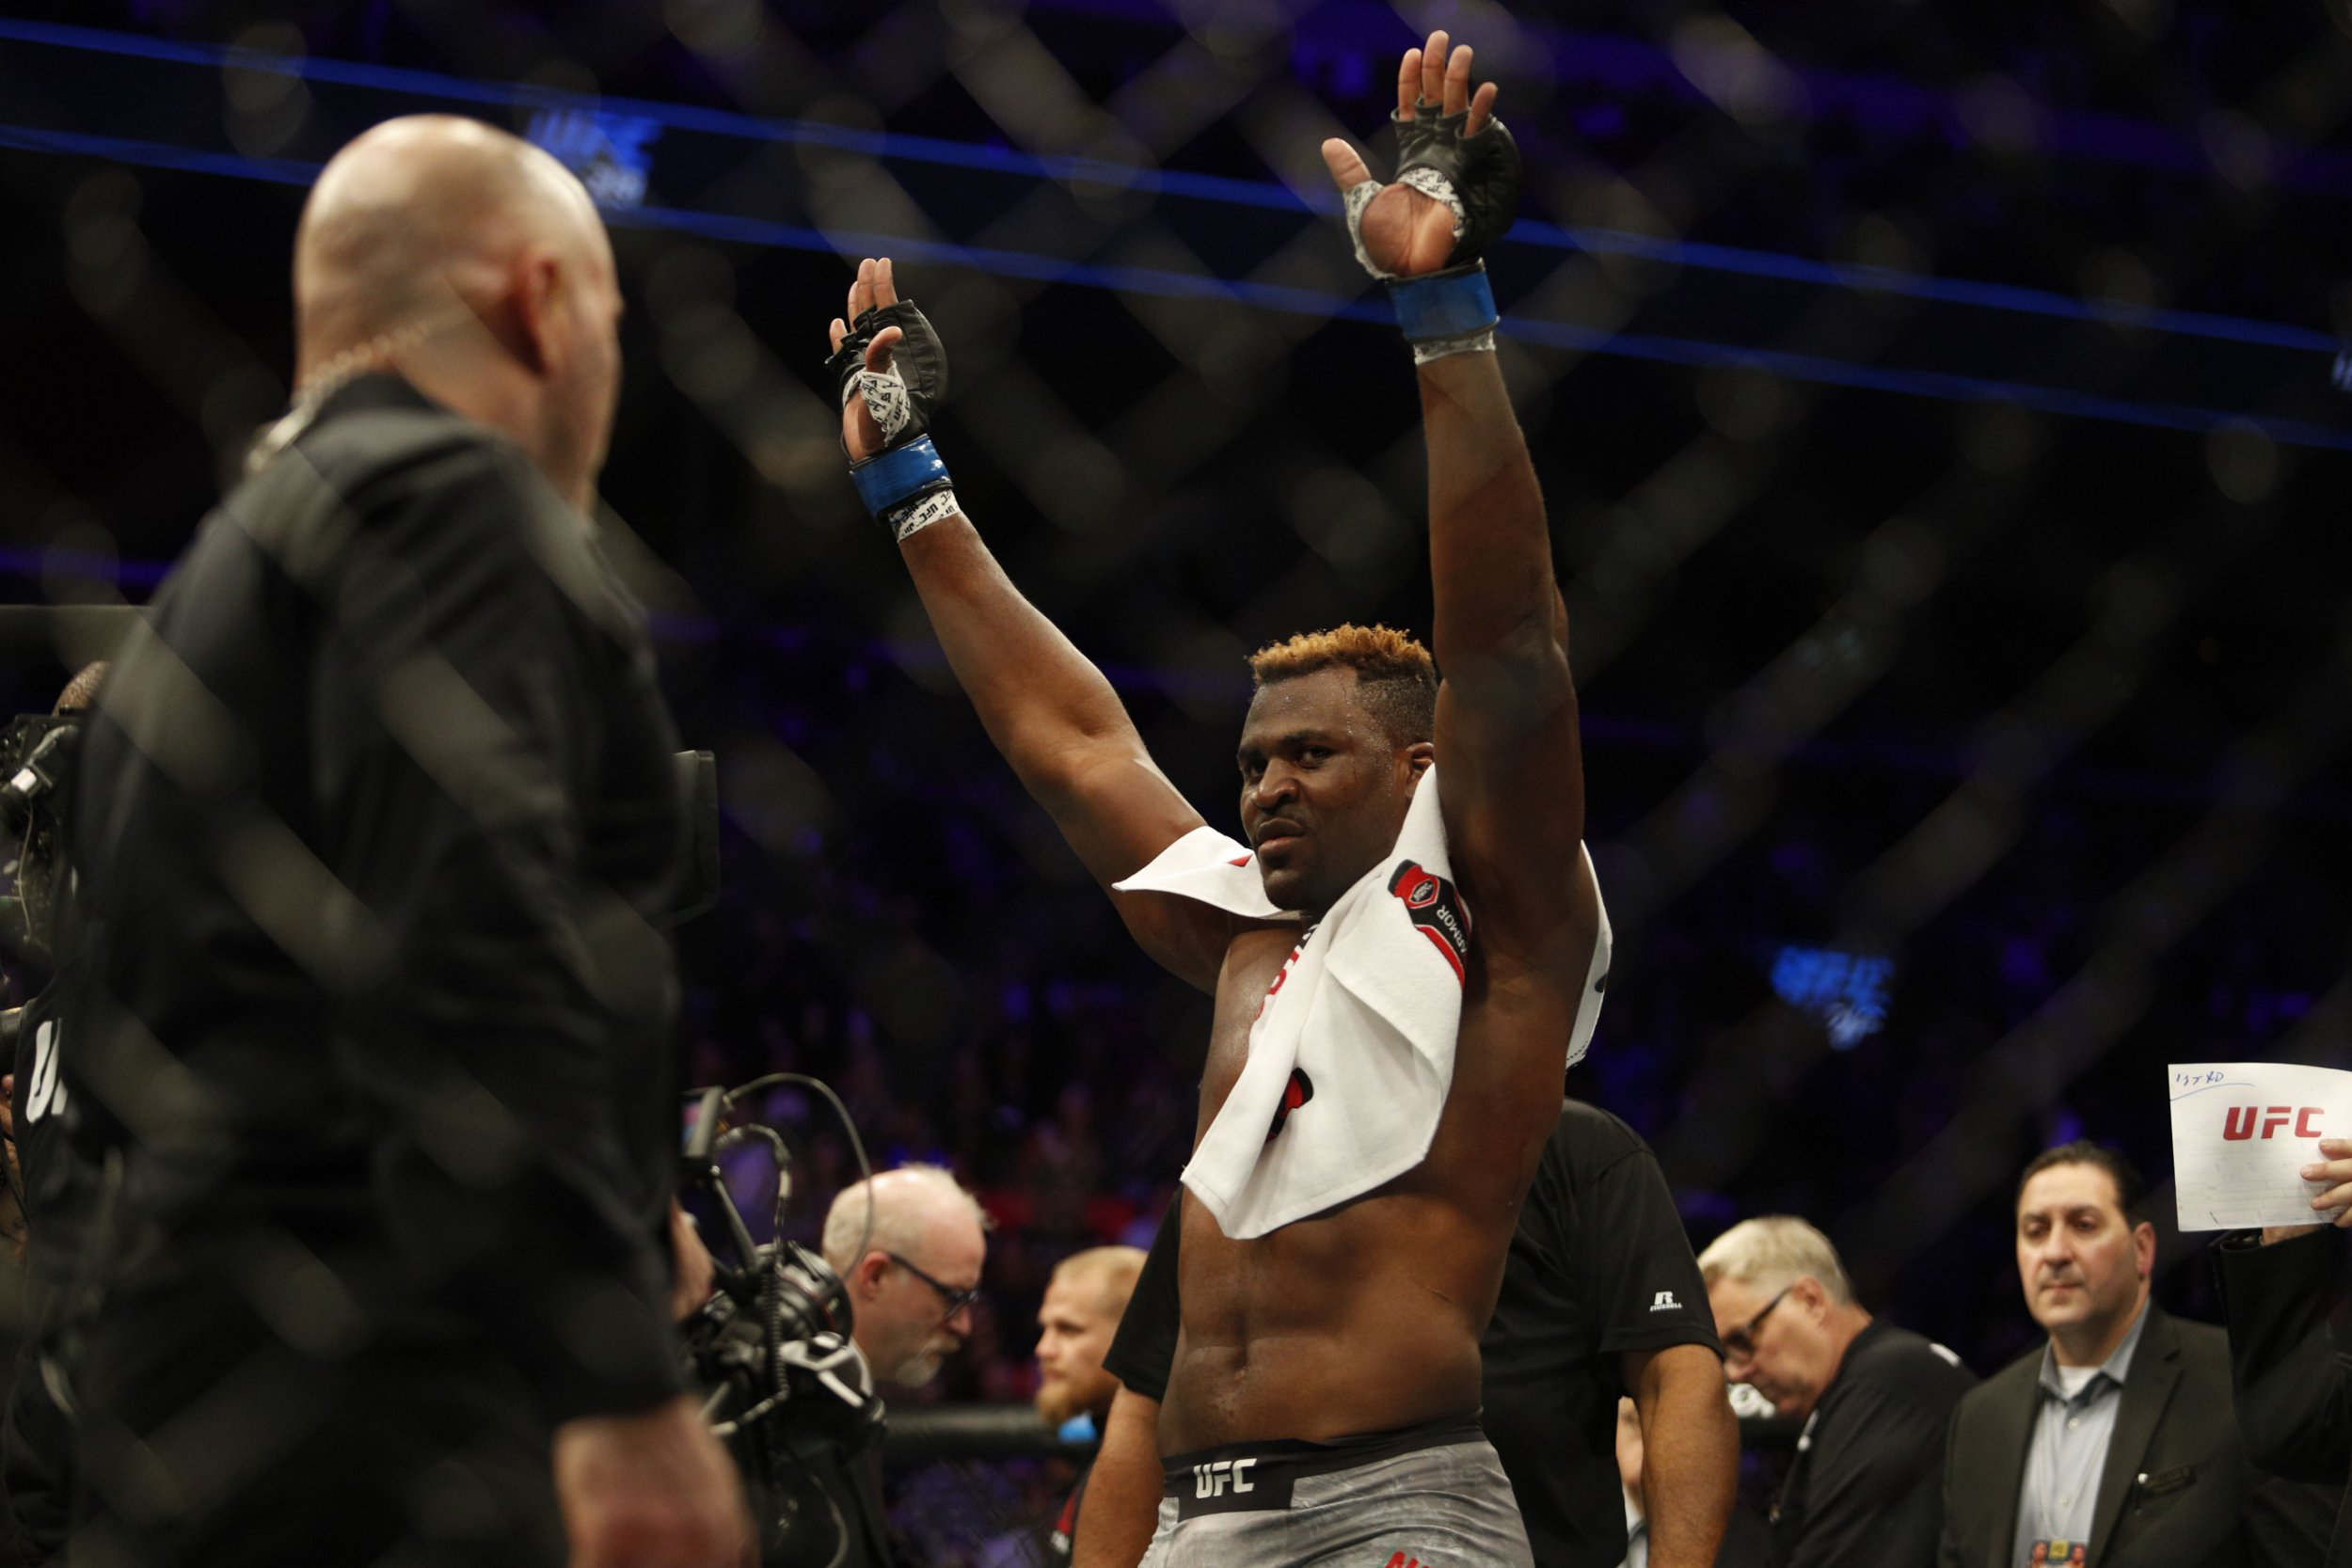 Francis Ngannou tells UFC champion Stipe Miocic he is coming for the heavyweight belt